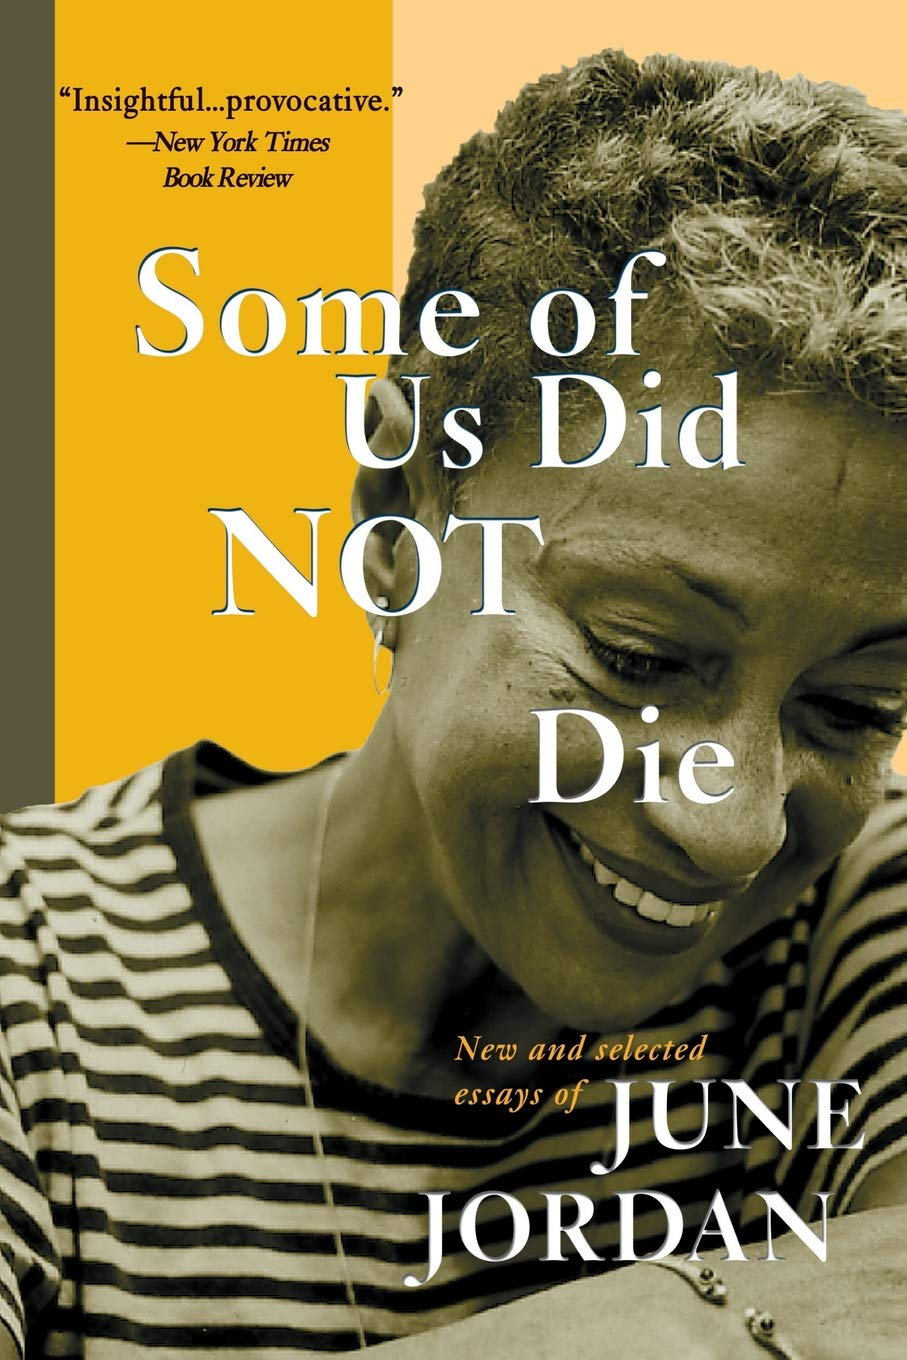 Some of Us Did Not Die: New and Selected Essays by June Jordan